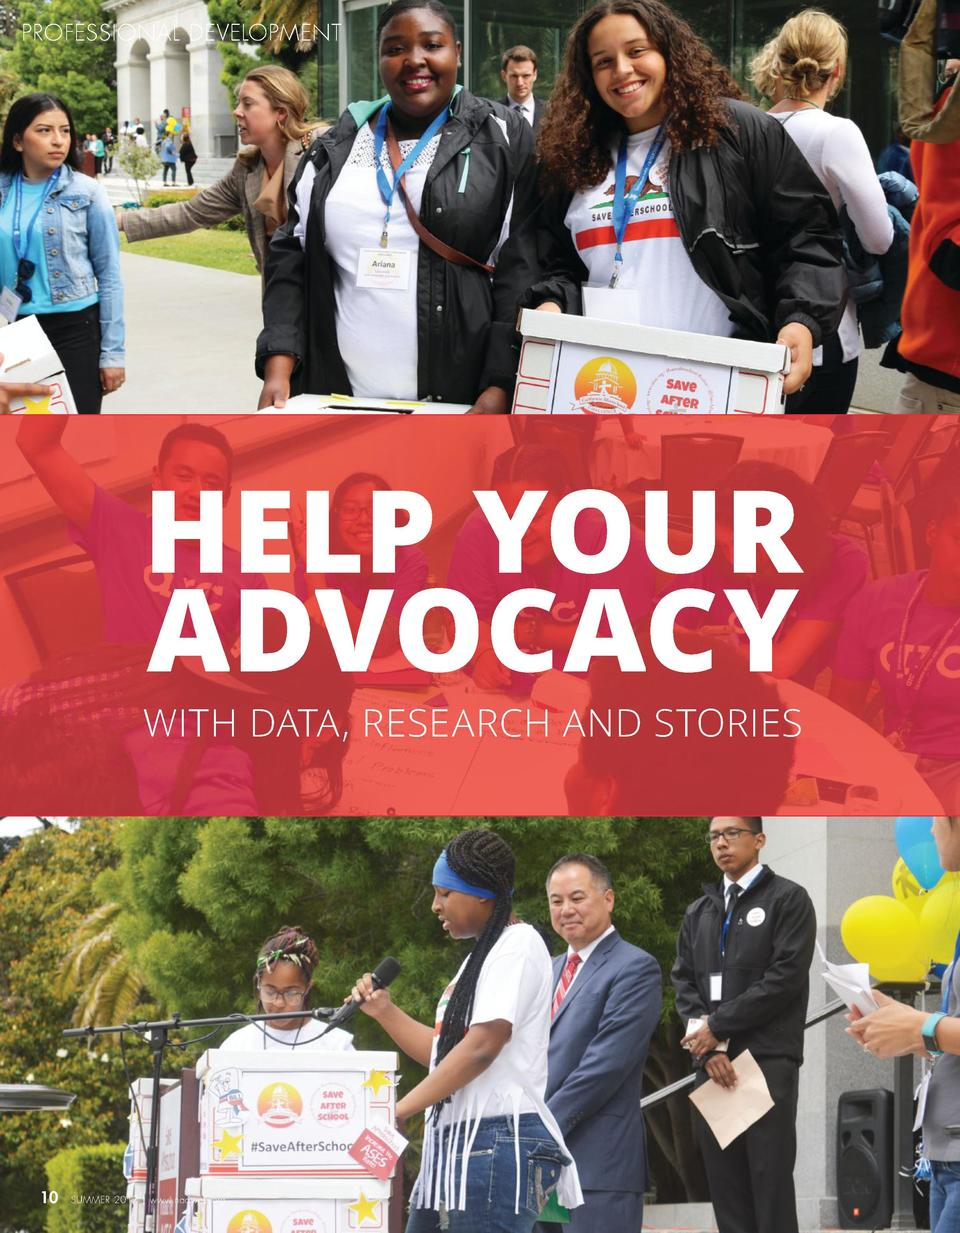 PROFESSIONAL DEVELOPMENT  HELP YOUR ADVOCACY  WITH DATA, RESEARCH AND STORIES  10  SUMMER 2017   www.naaweb.org